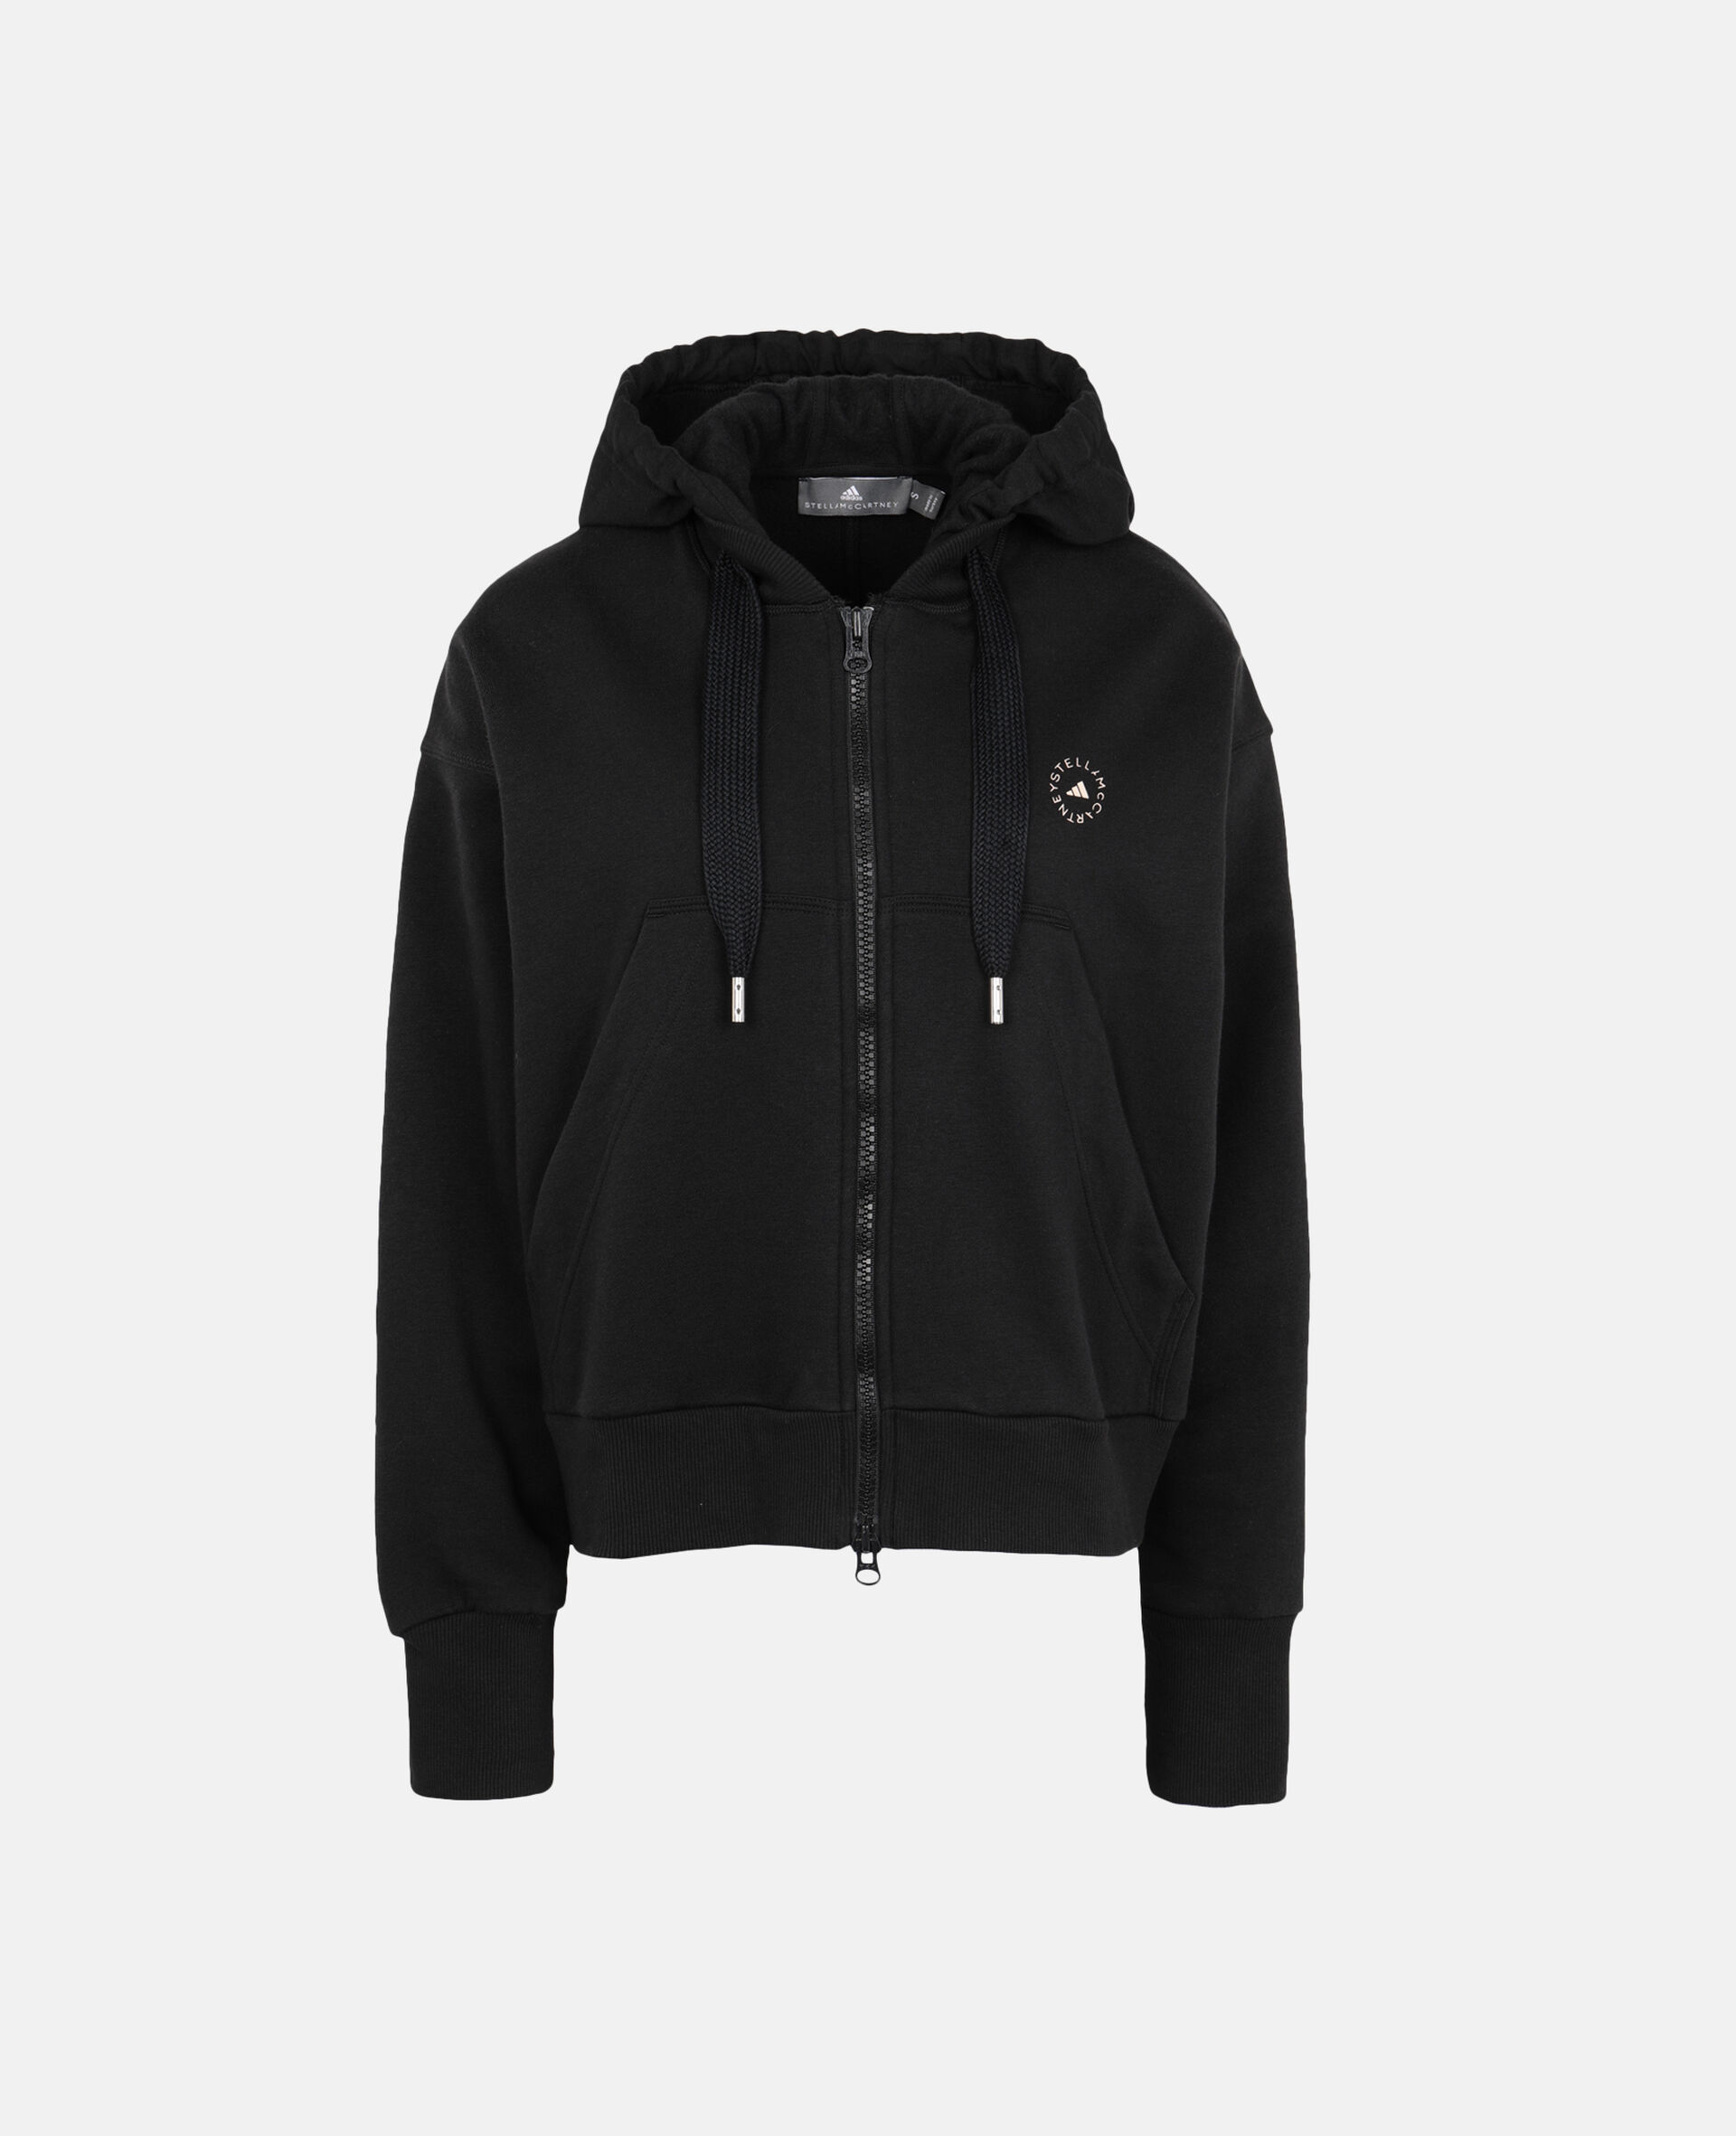 Black Full-zipper Cropped Hoodie-Black-large image number 0